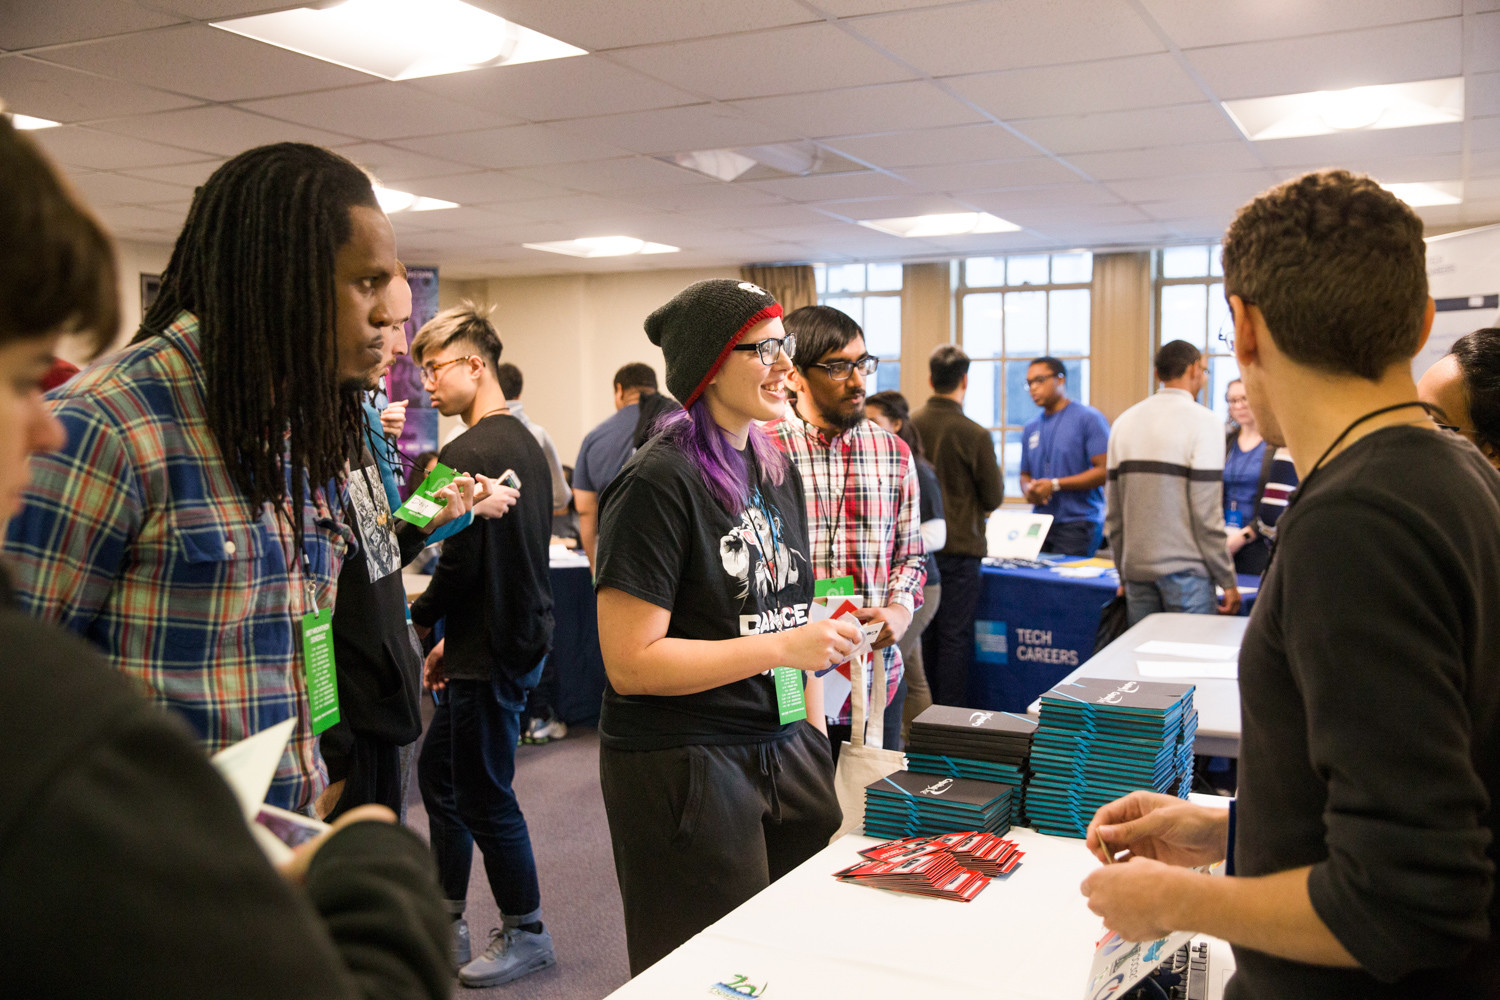 Students taking part in the Lehman College Hack-athon network with sponsors. The goal of the 18-hour event is to give students from underrepresented and diverse backgrounds the chance to showcase their talents, and newcomers an opportunity to learn new skills. This is the fourth year Lehman has hosted the event.